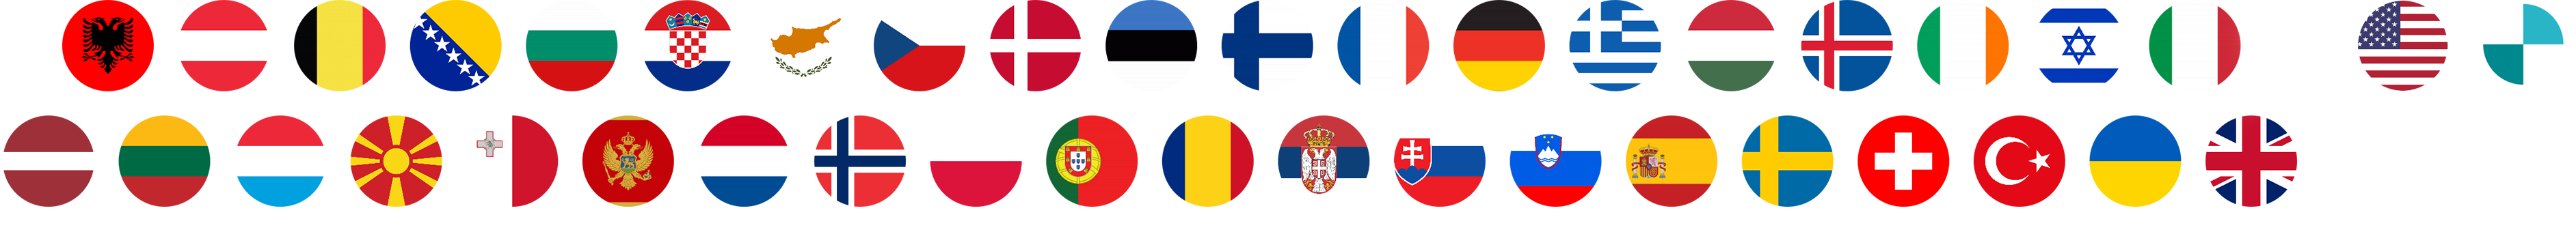 Country flags of all participating countries in a 2x12 grid